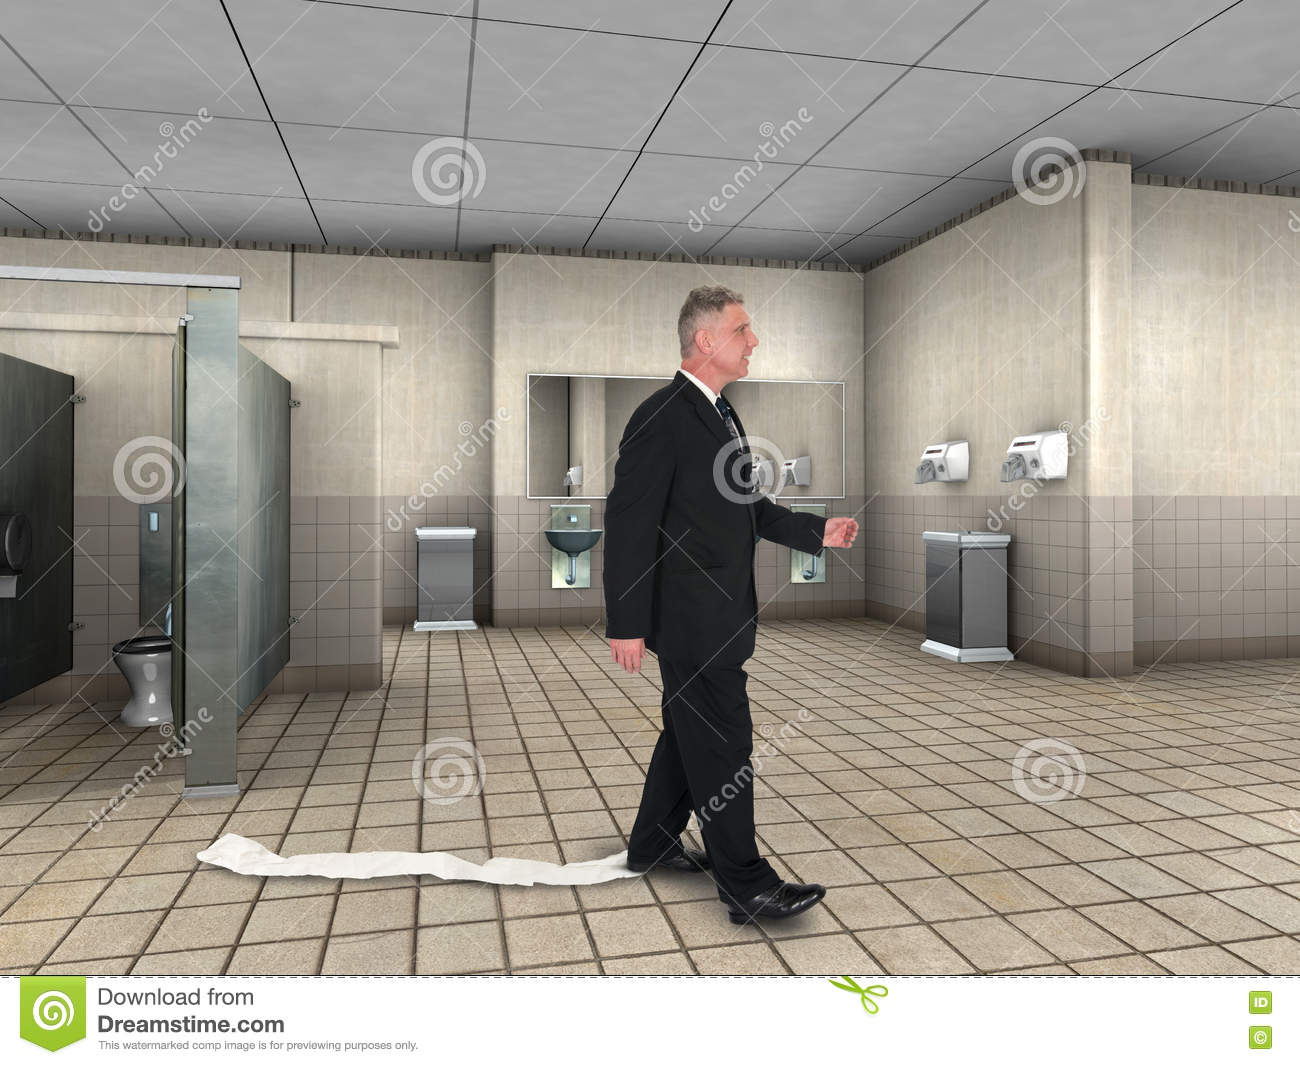 public toilet essay How to use a public toilet safely by iram zaz updated: monday, june 8, 2015, 13:00 [ist] nature's call is an urgency which we have to tend to if we are outside our.